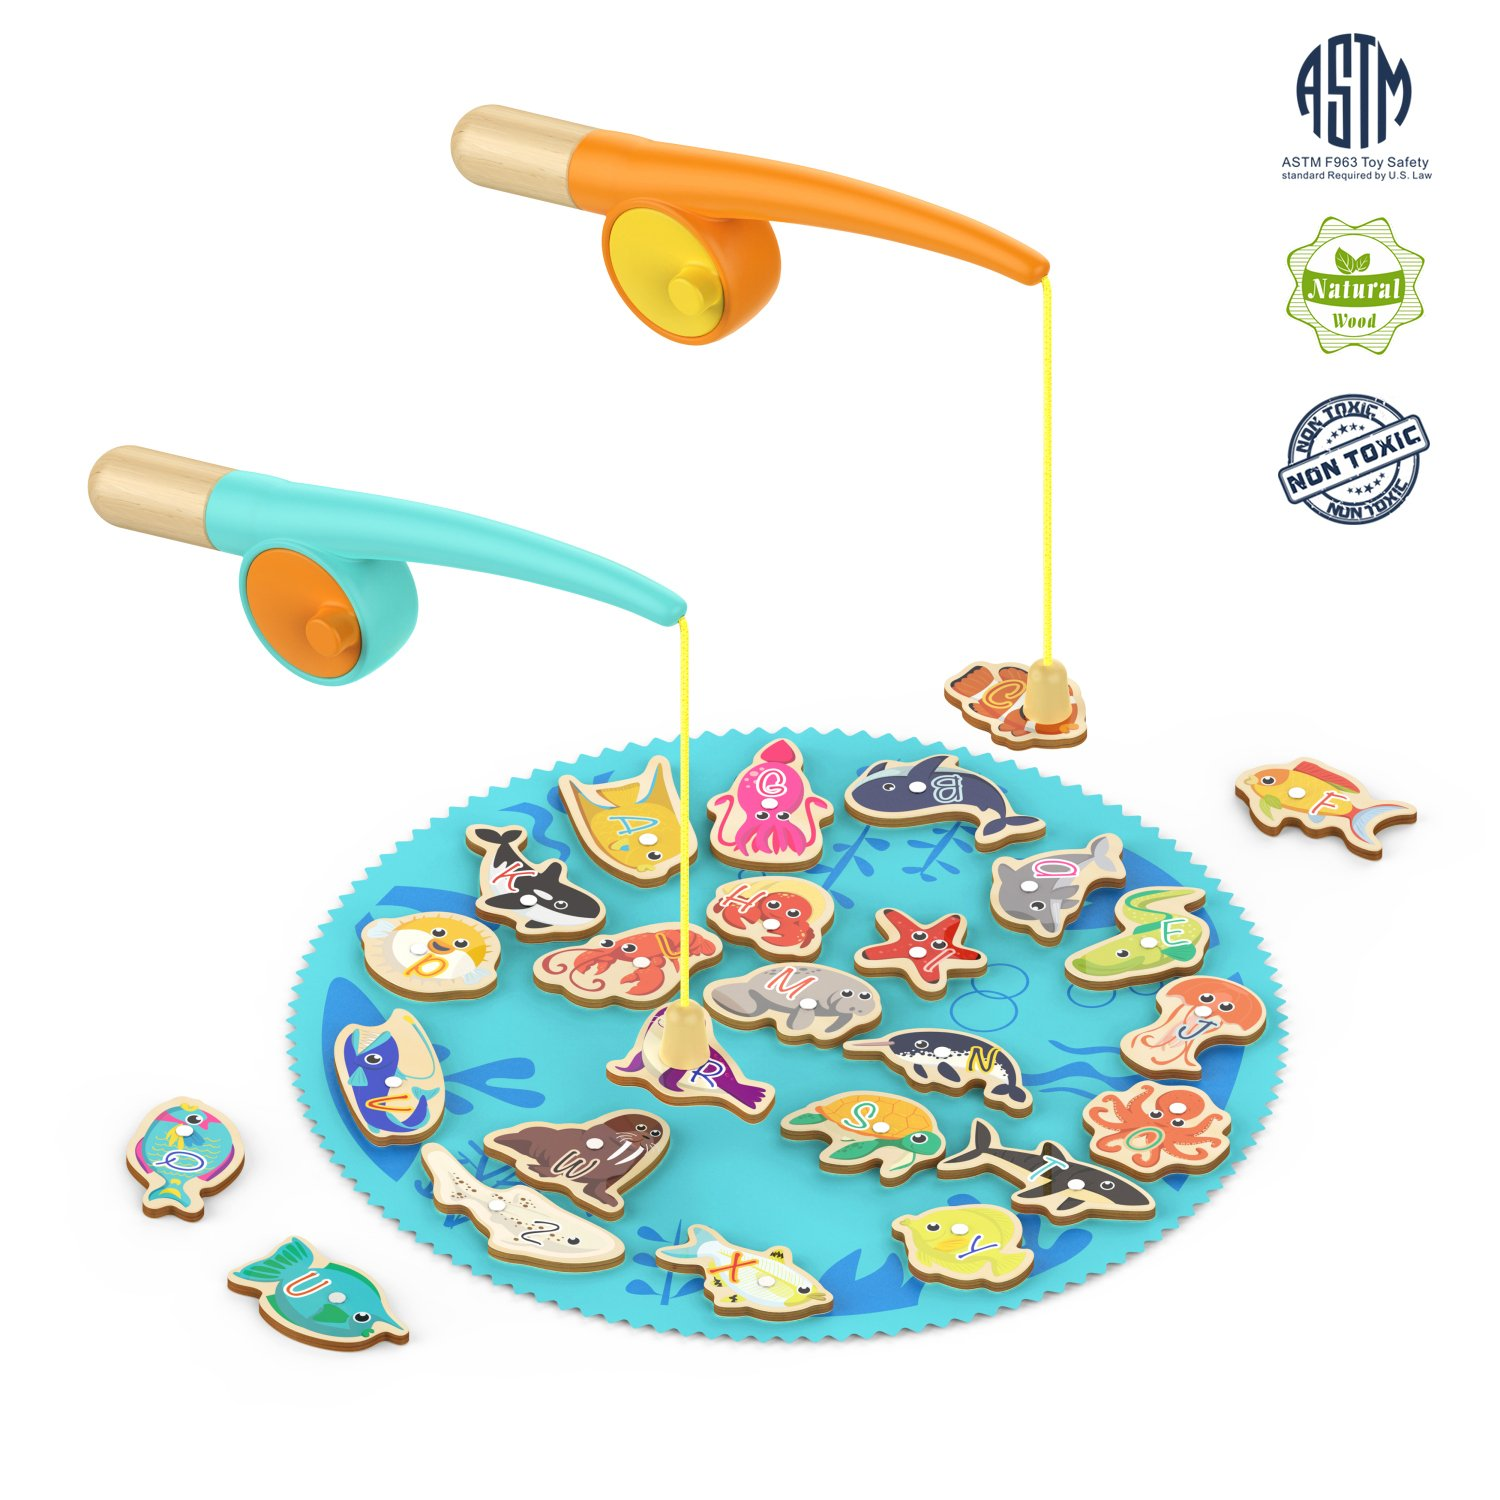 TOP BRIGHT Magnetic Wooden Fishing Game for Toddler Fish Toy for 2 3 Year Old Boy and Girl Gifts Catch and Count with 26 Ocean Animals and 2 Rods SUN TOP